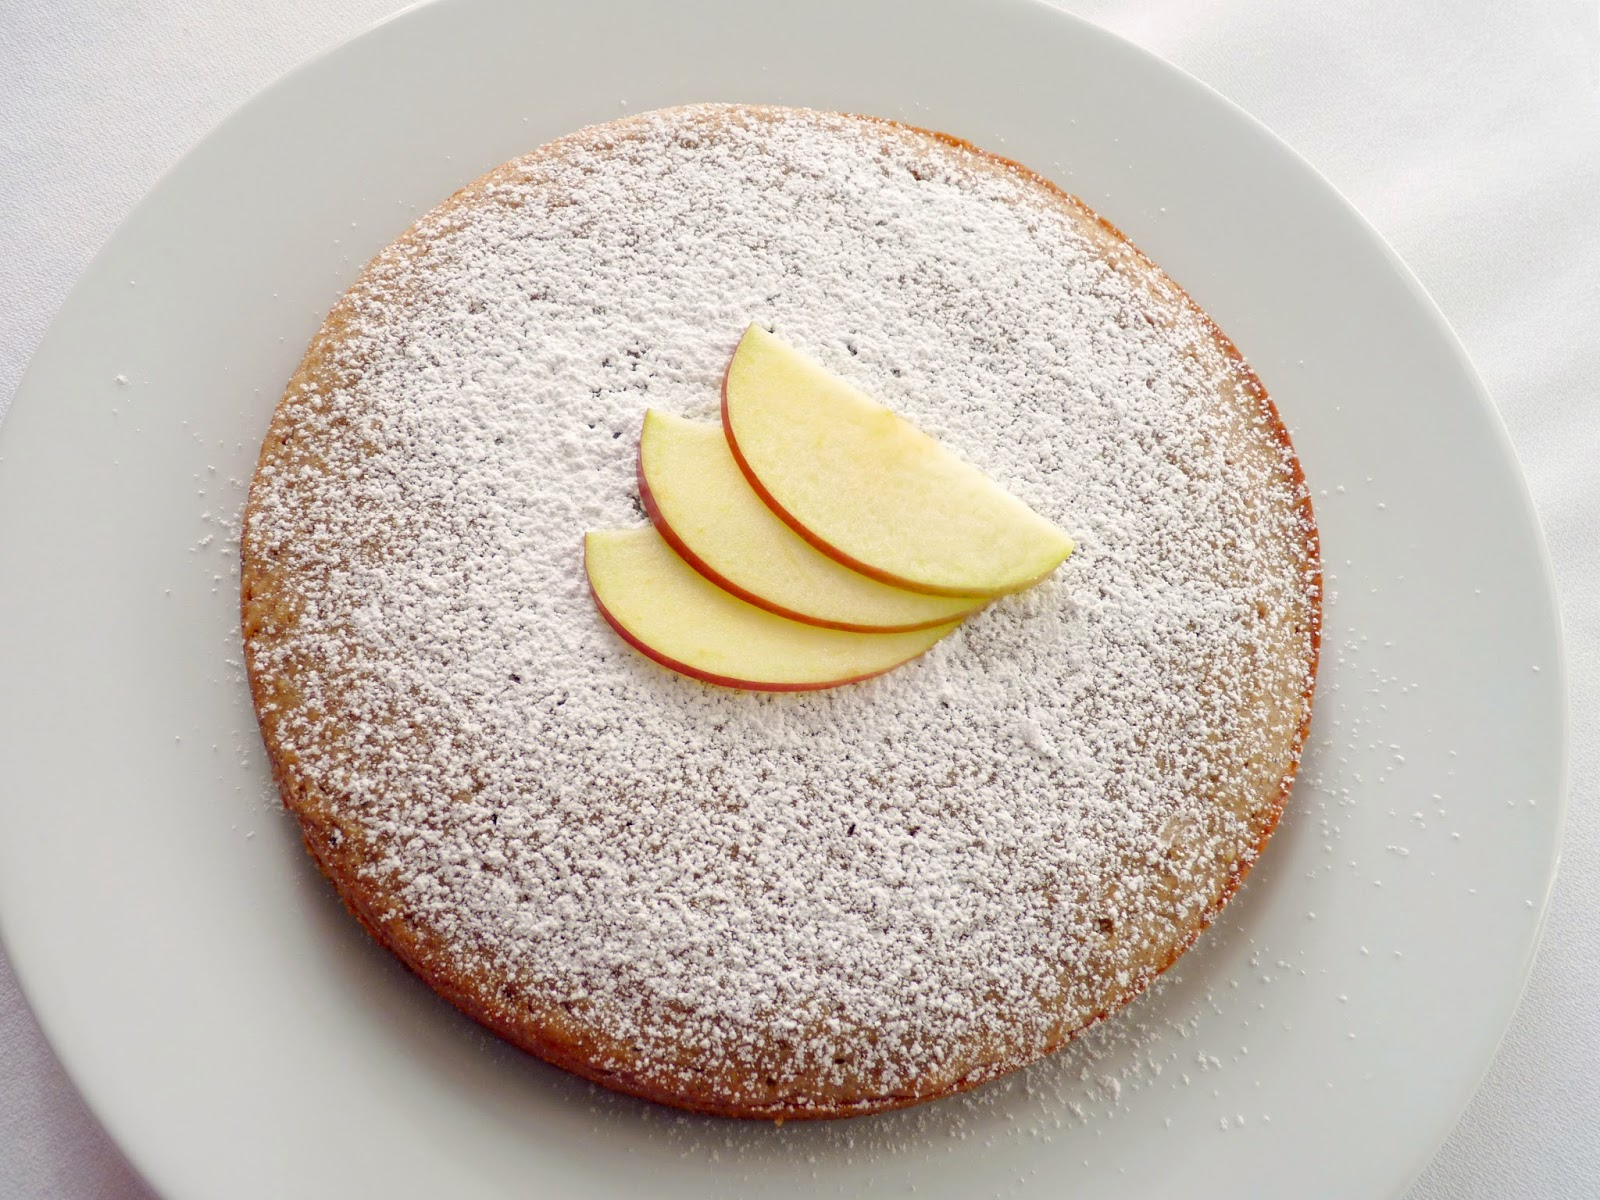 Can Unsweetened Applesauce Be Used In Cake Recipes